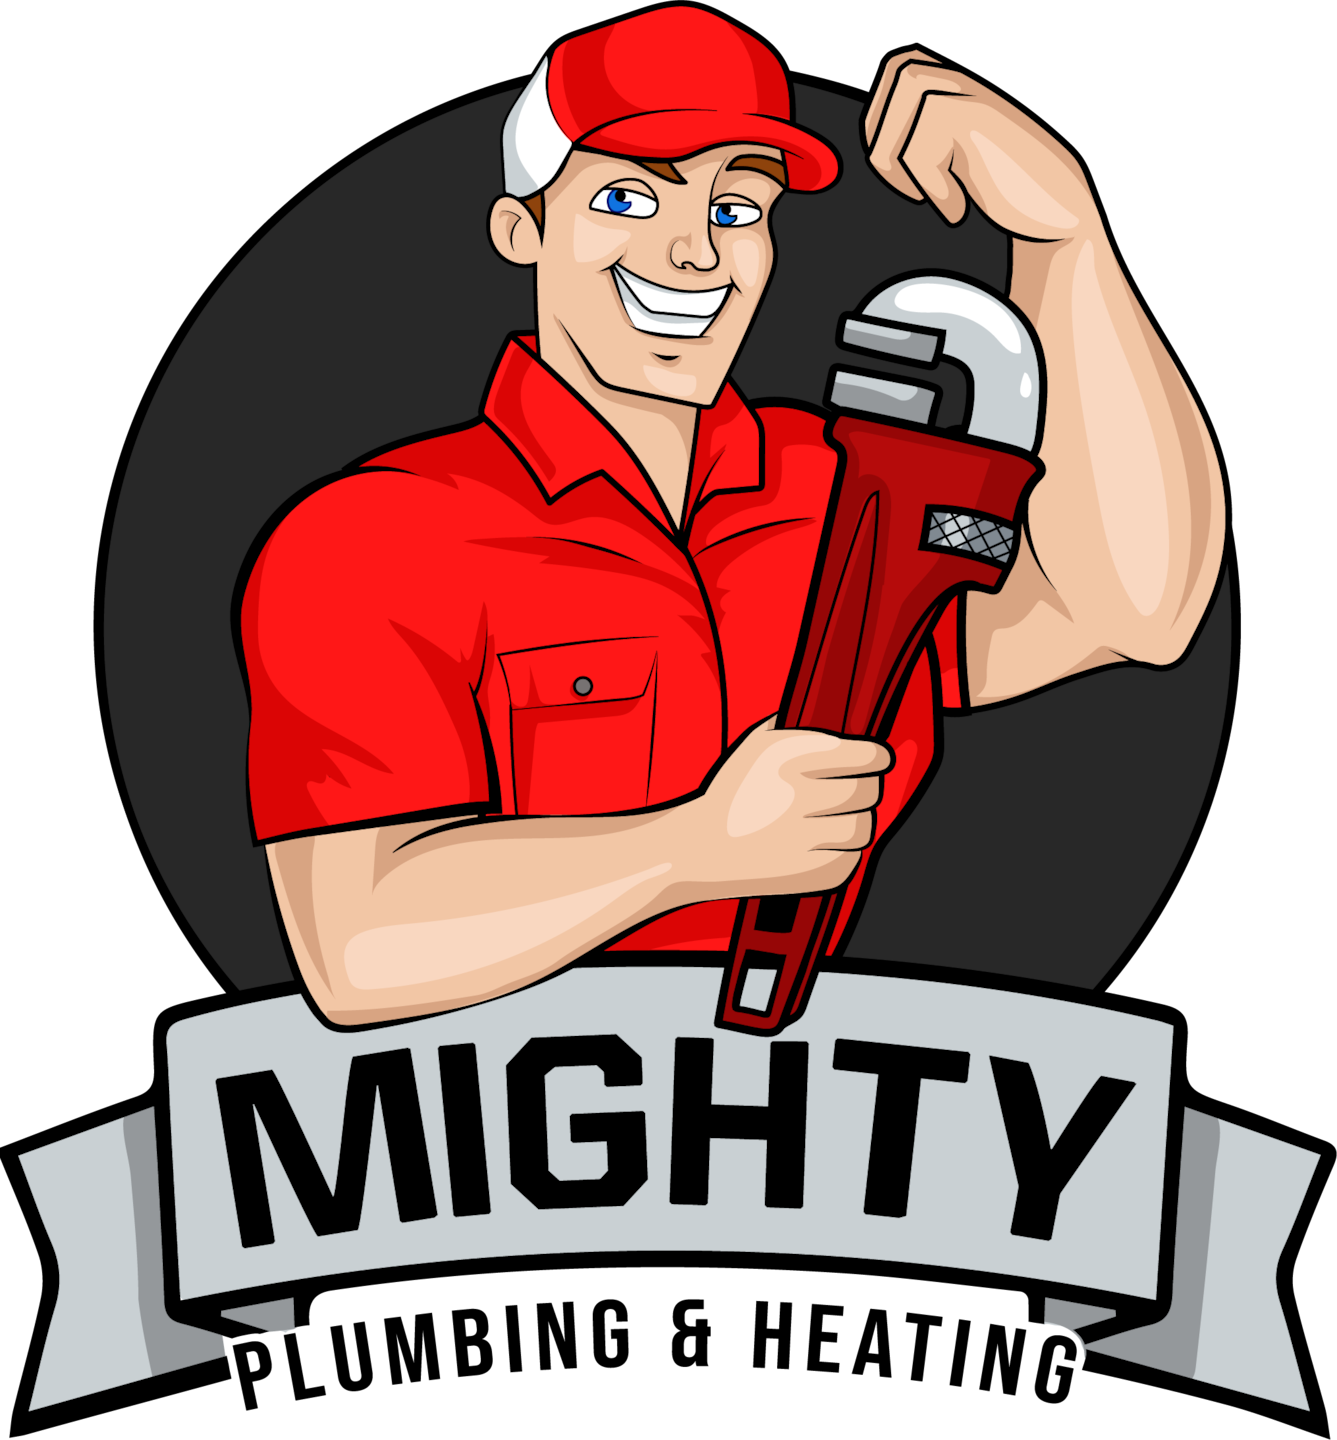 Mighty Plumbing and heating